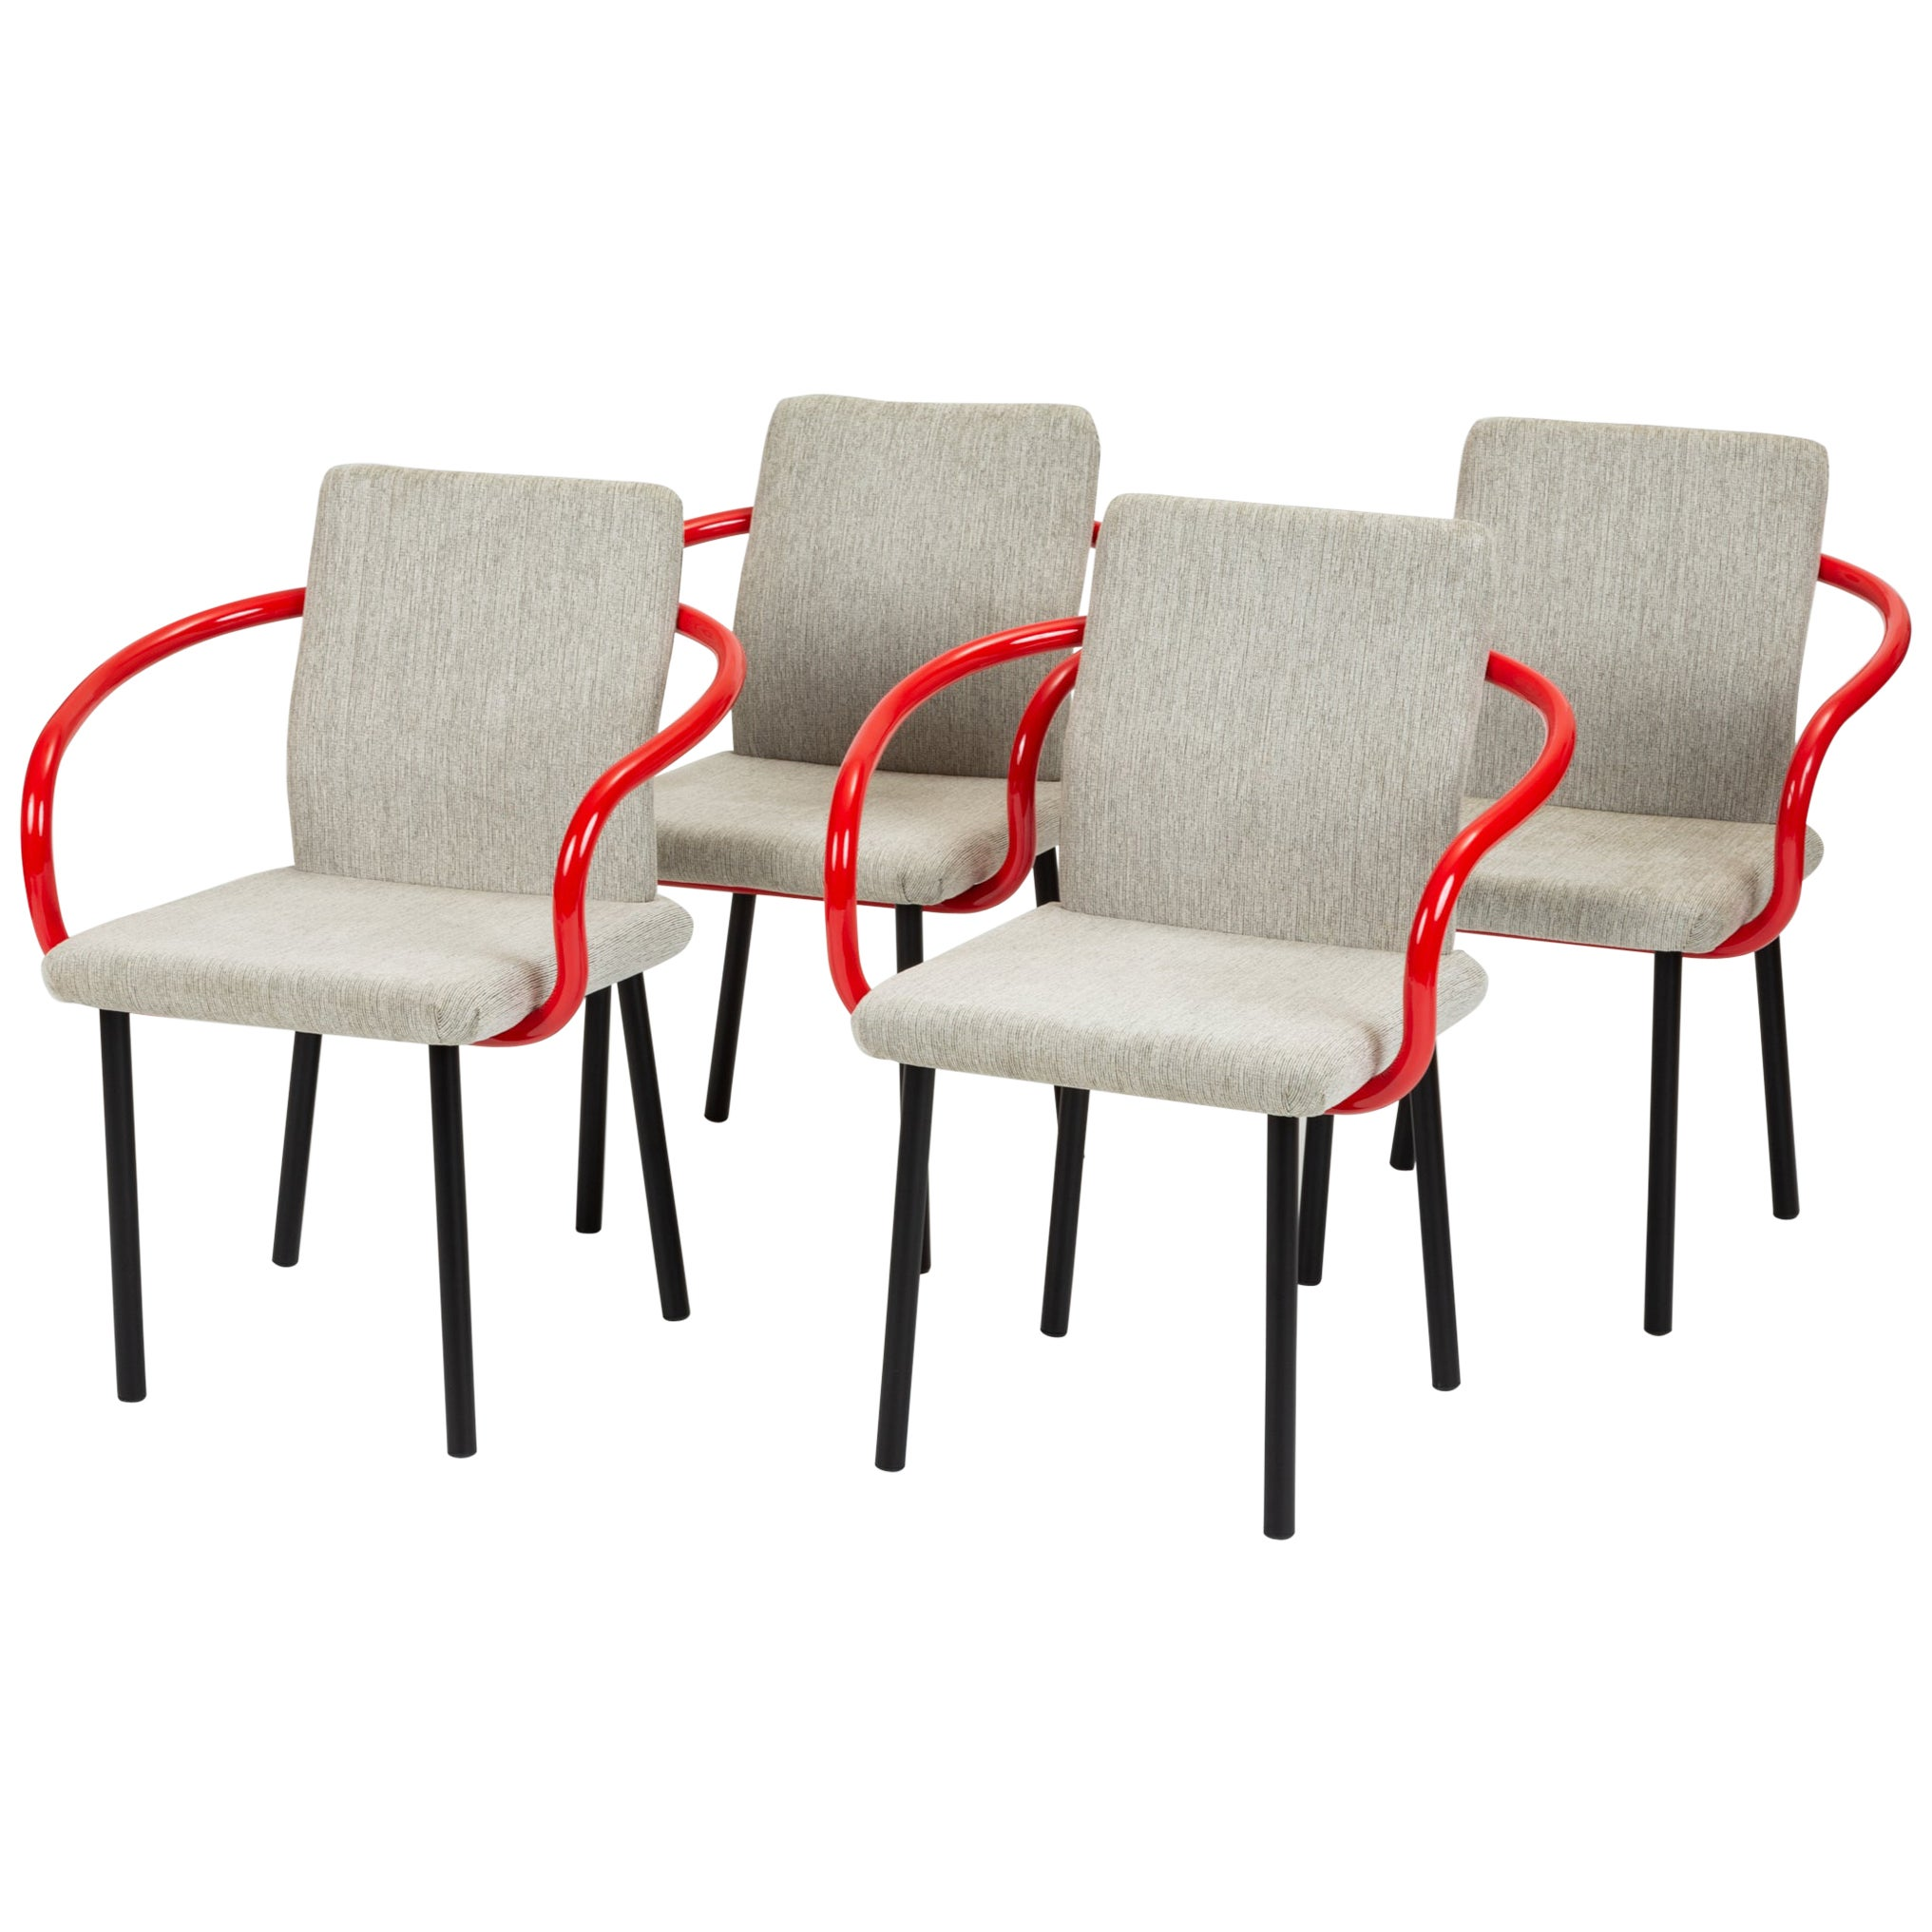 Set of Four Ettore Sottsass for Knoll Mandarin Chairs with Red Arms